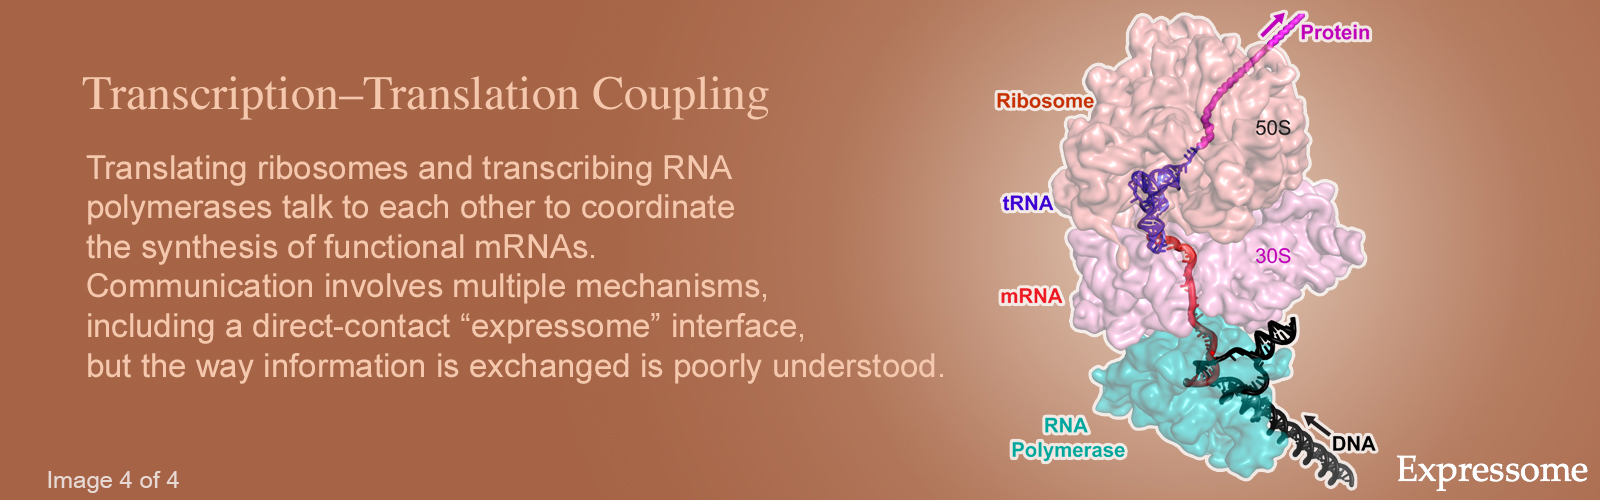 "Hero image #4 featuring an illustration of the expressome, version with text that reads: Translating ribosomes and transcribing RNA polymerases talk to each other to coordinate the synthesis of functional mRNAs. Communication involves multiple mechanisms, including a direct-contact ""expressome"" interface, but the way information is exchanged is poorly understood."